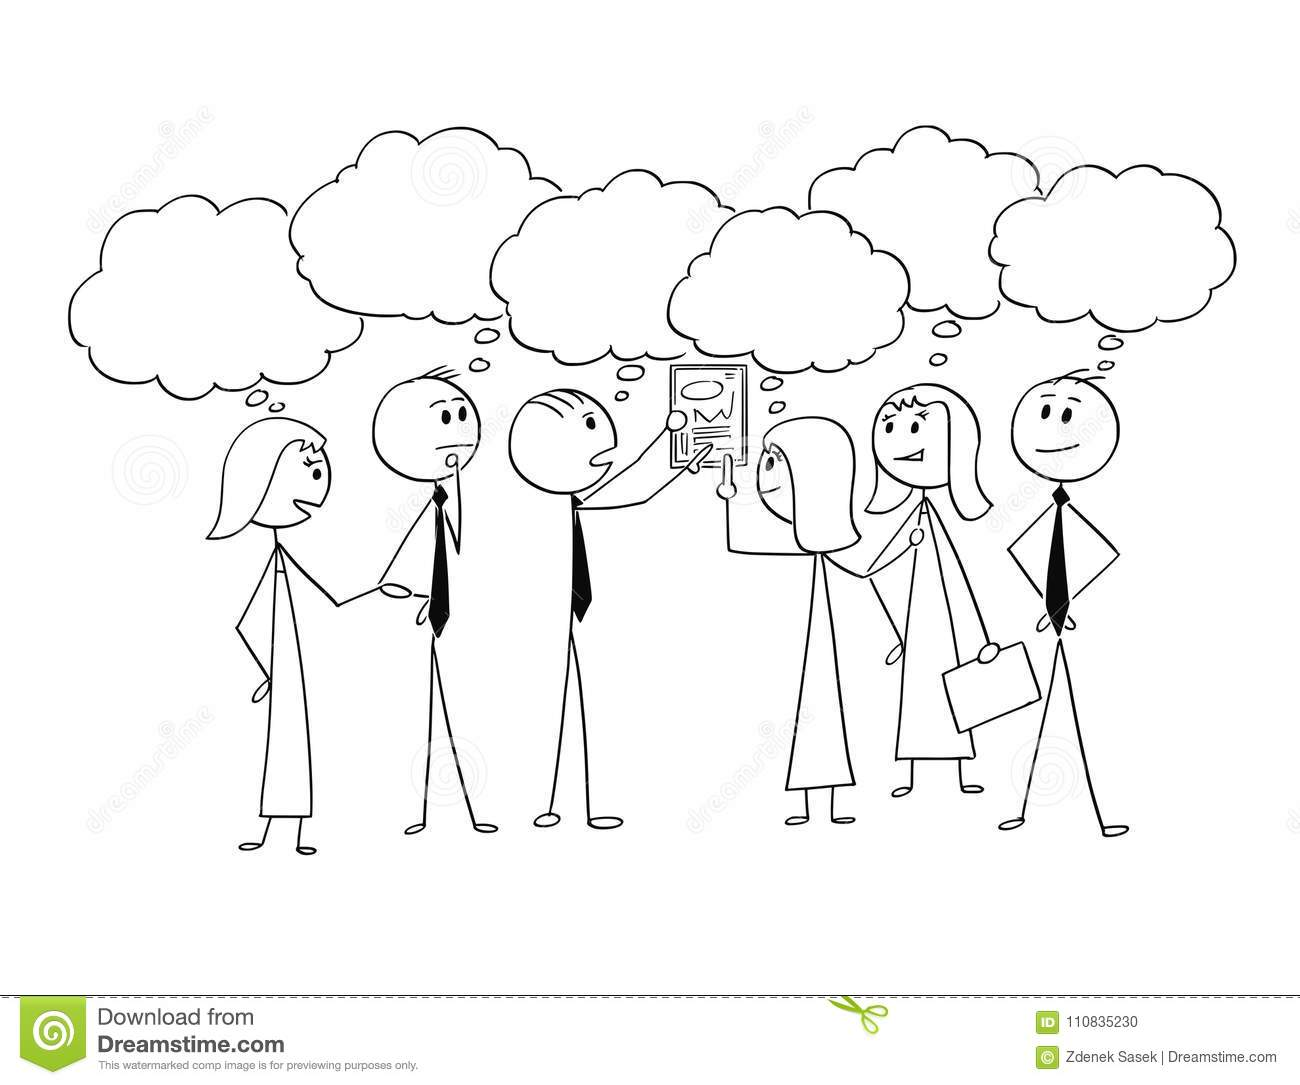 Cartoon Of Business Team Working Together To Find Problem